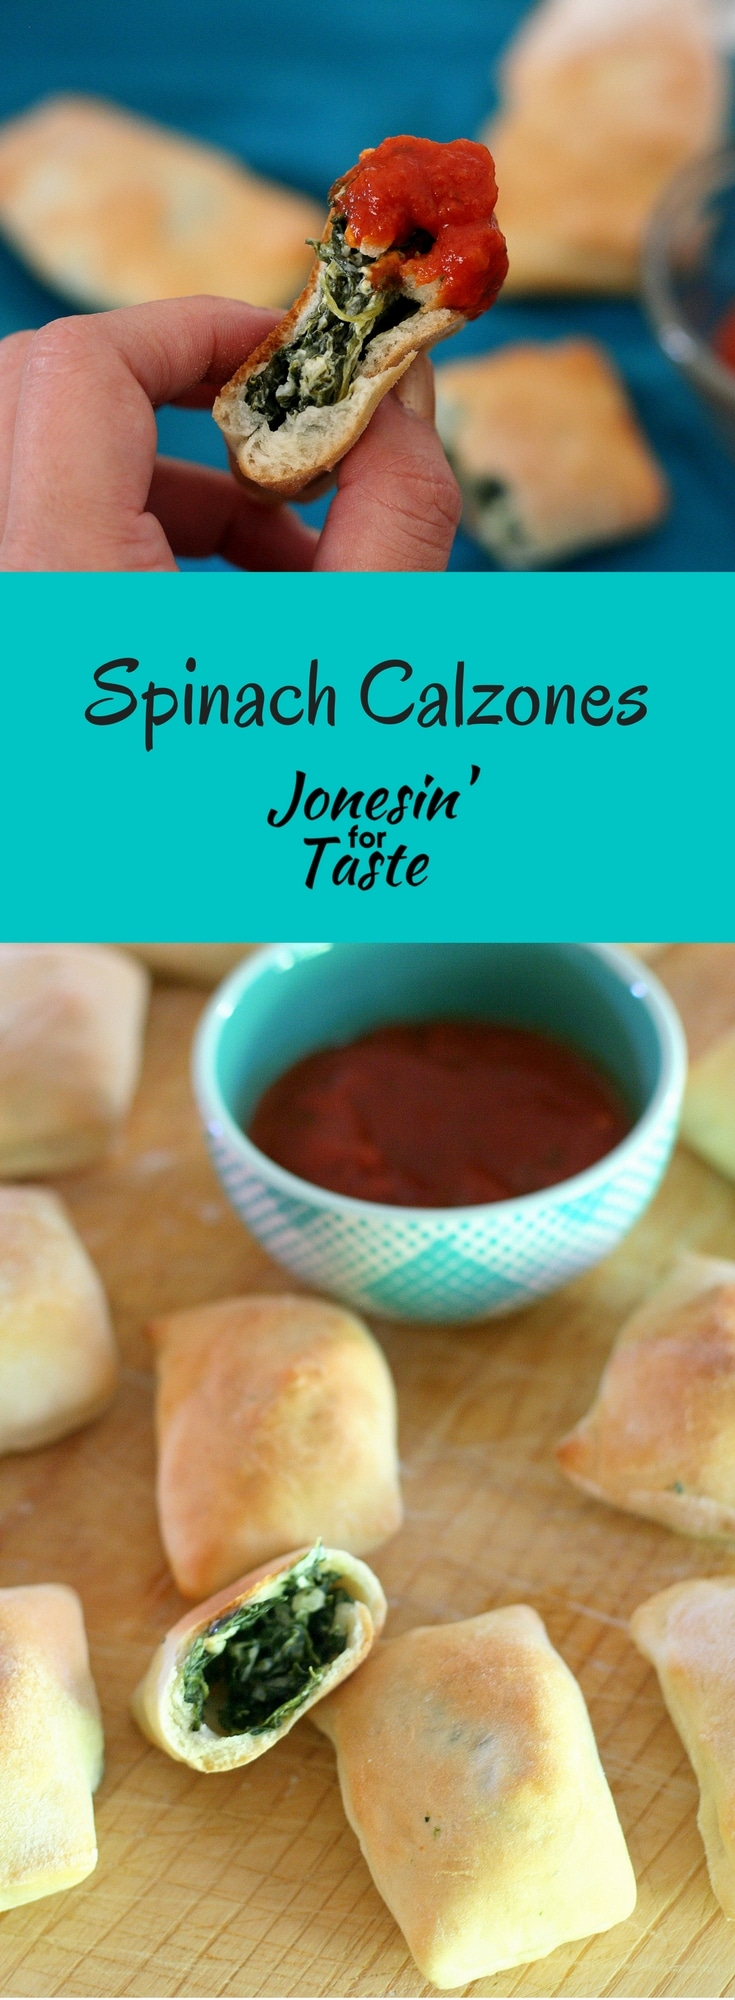 Easy Mini Spinach Calzones is a tasty appetizer with a creamy Parmesan spinach filling that is a crowd pleaser for game day.